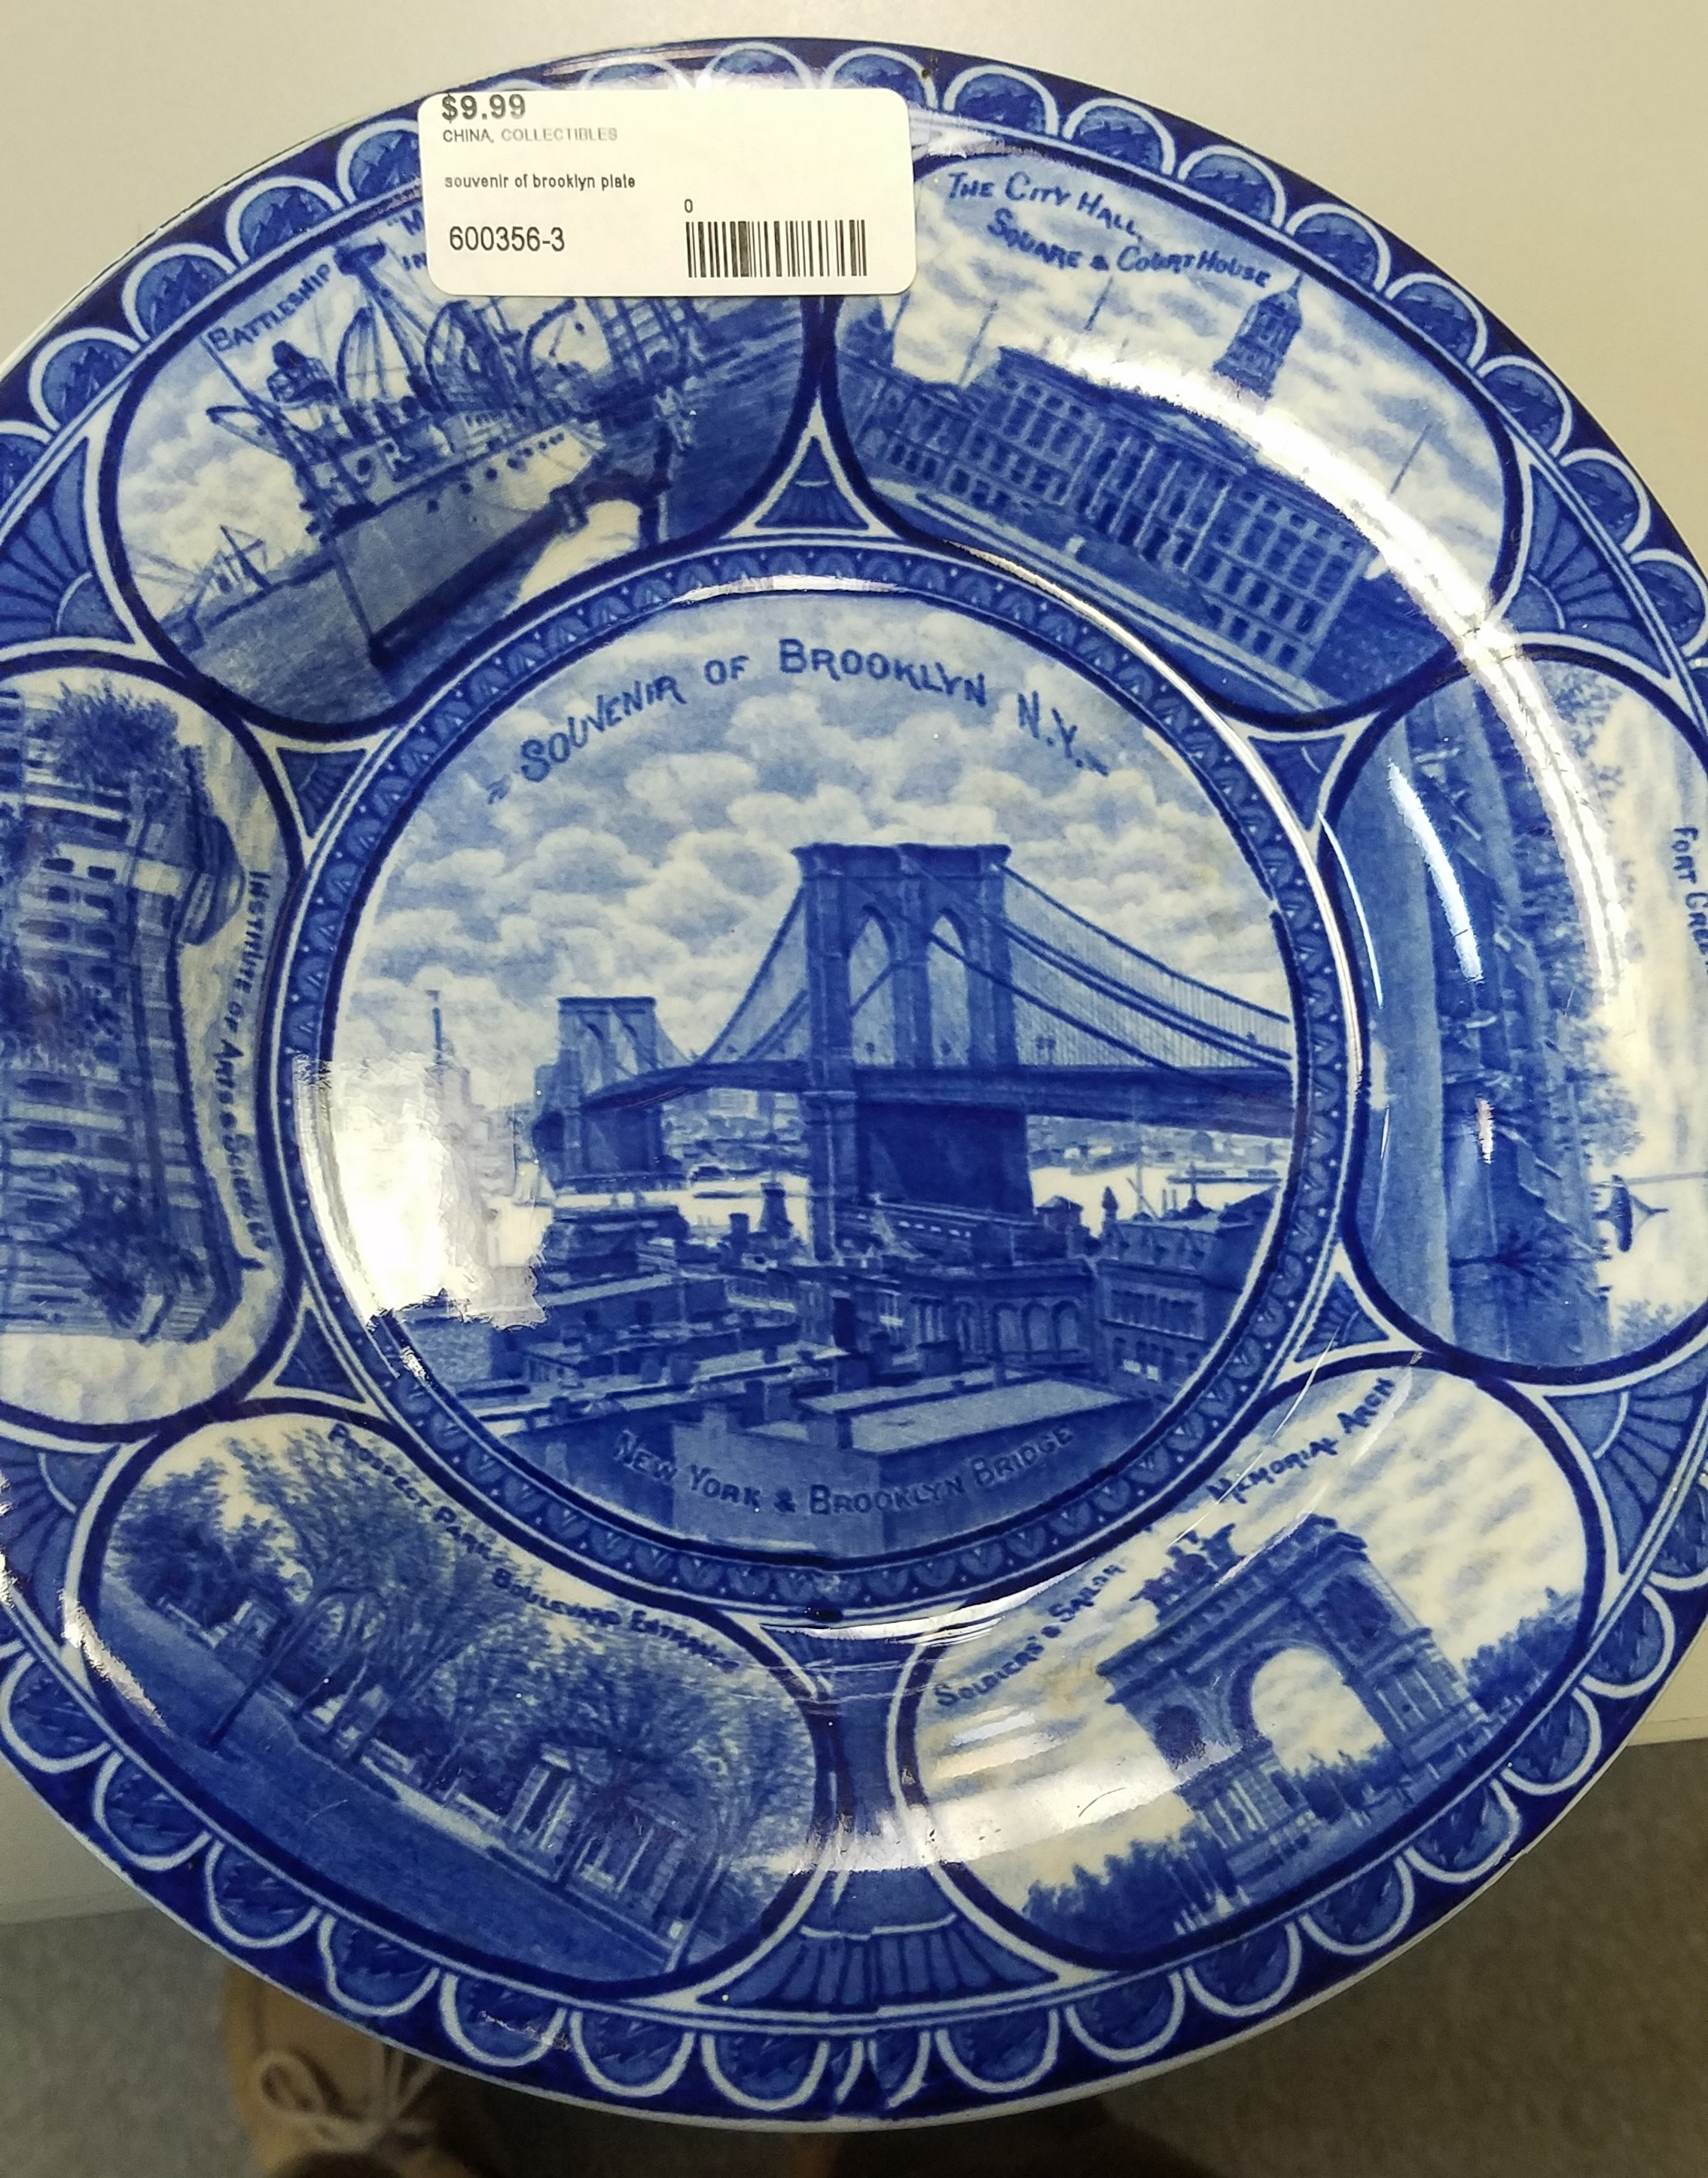 Souvenir of Brooklyn plate